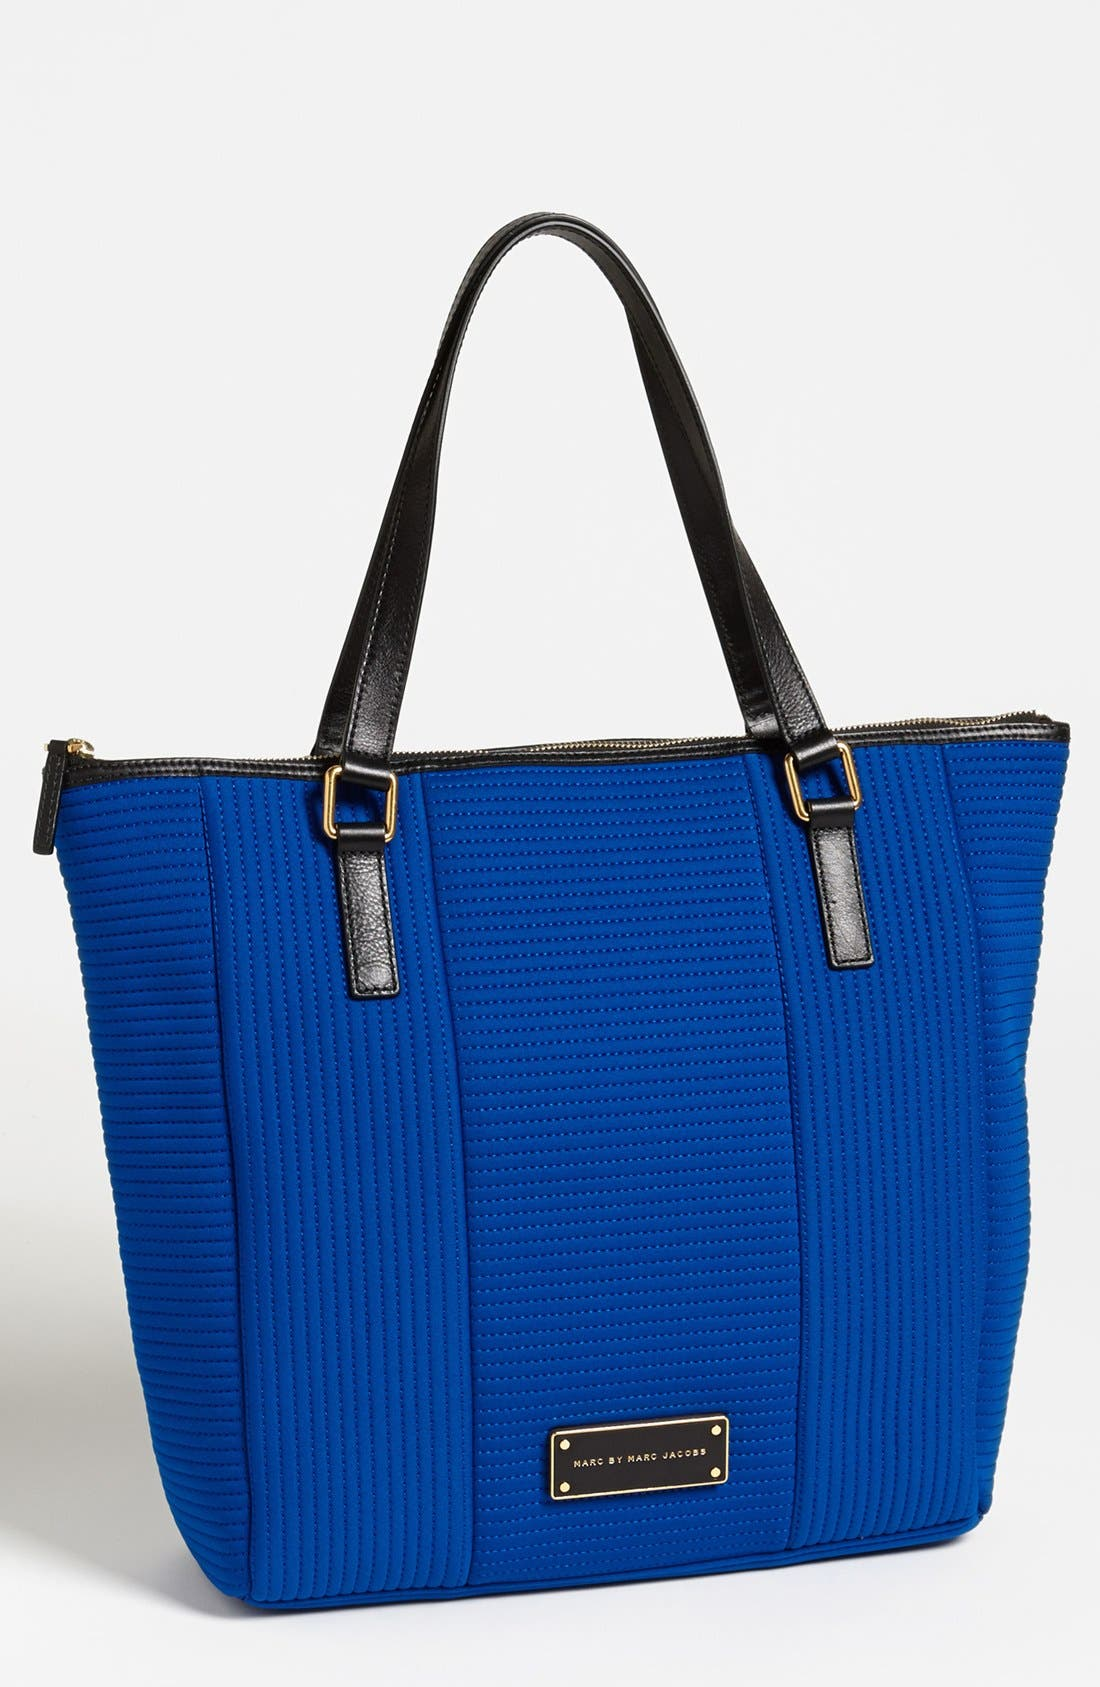 Alternate Image 1 Selected - MARC BY MARC JACOBS 'Tech Me' Tote